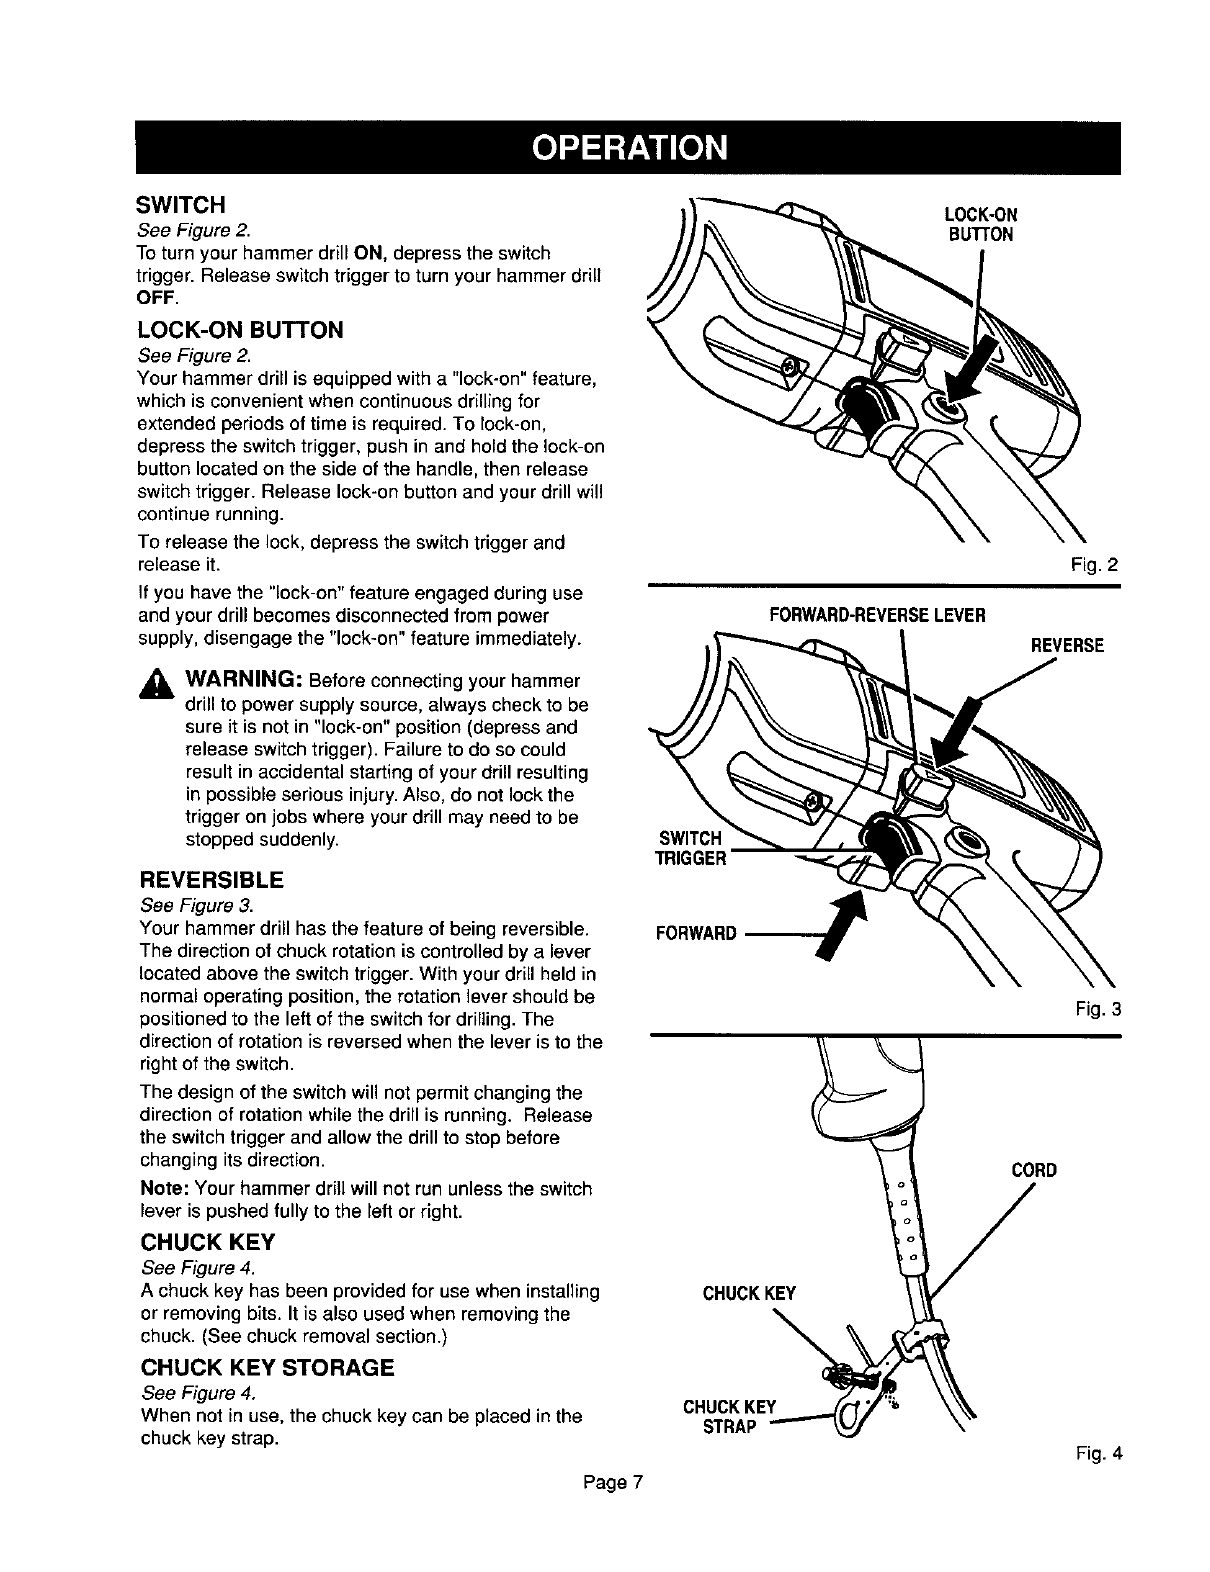 Page 7 of Craftsman Drill 315.10136 User Guide